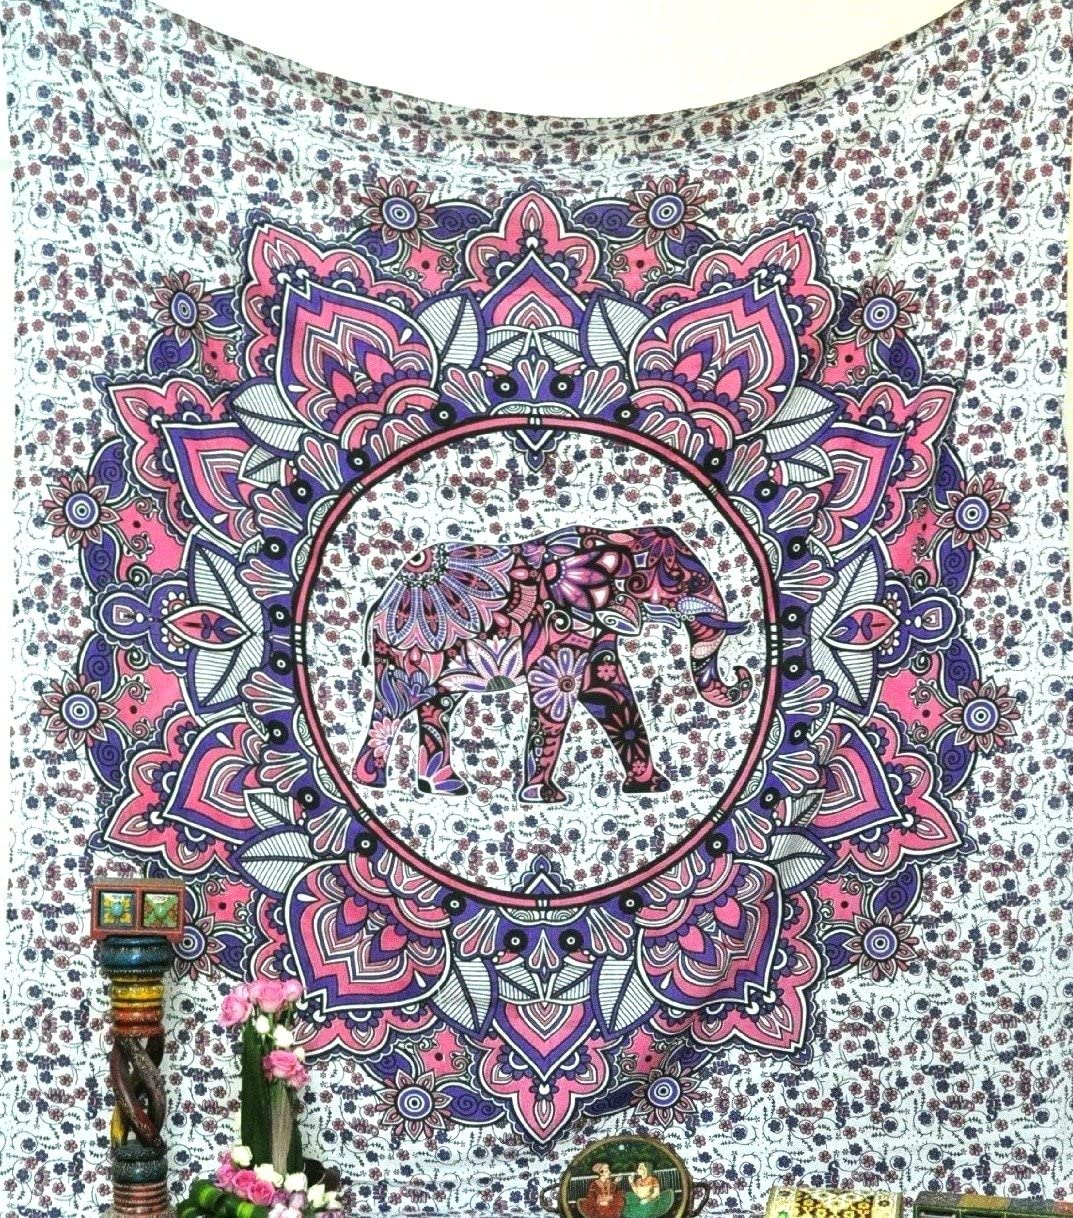 Jaipur Handloom Pink and Purple Elephant Mandala Tapestry Wall Hanging Dorm Decor Large Size Indian Cotton Psychedelic Hippie Flower Tapestry Bohemian Bedspread Bedding Bed Cover Picnic Blanket